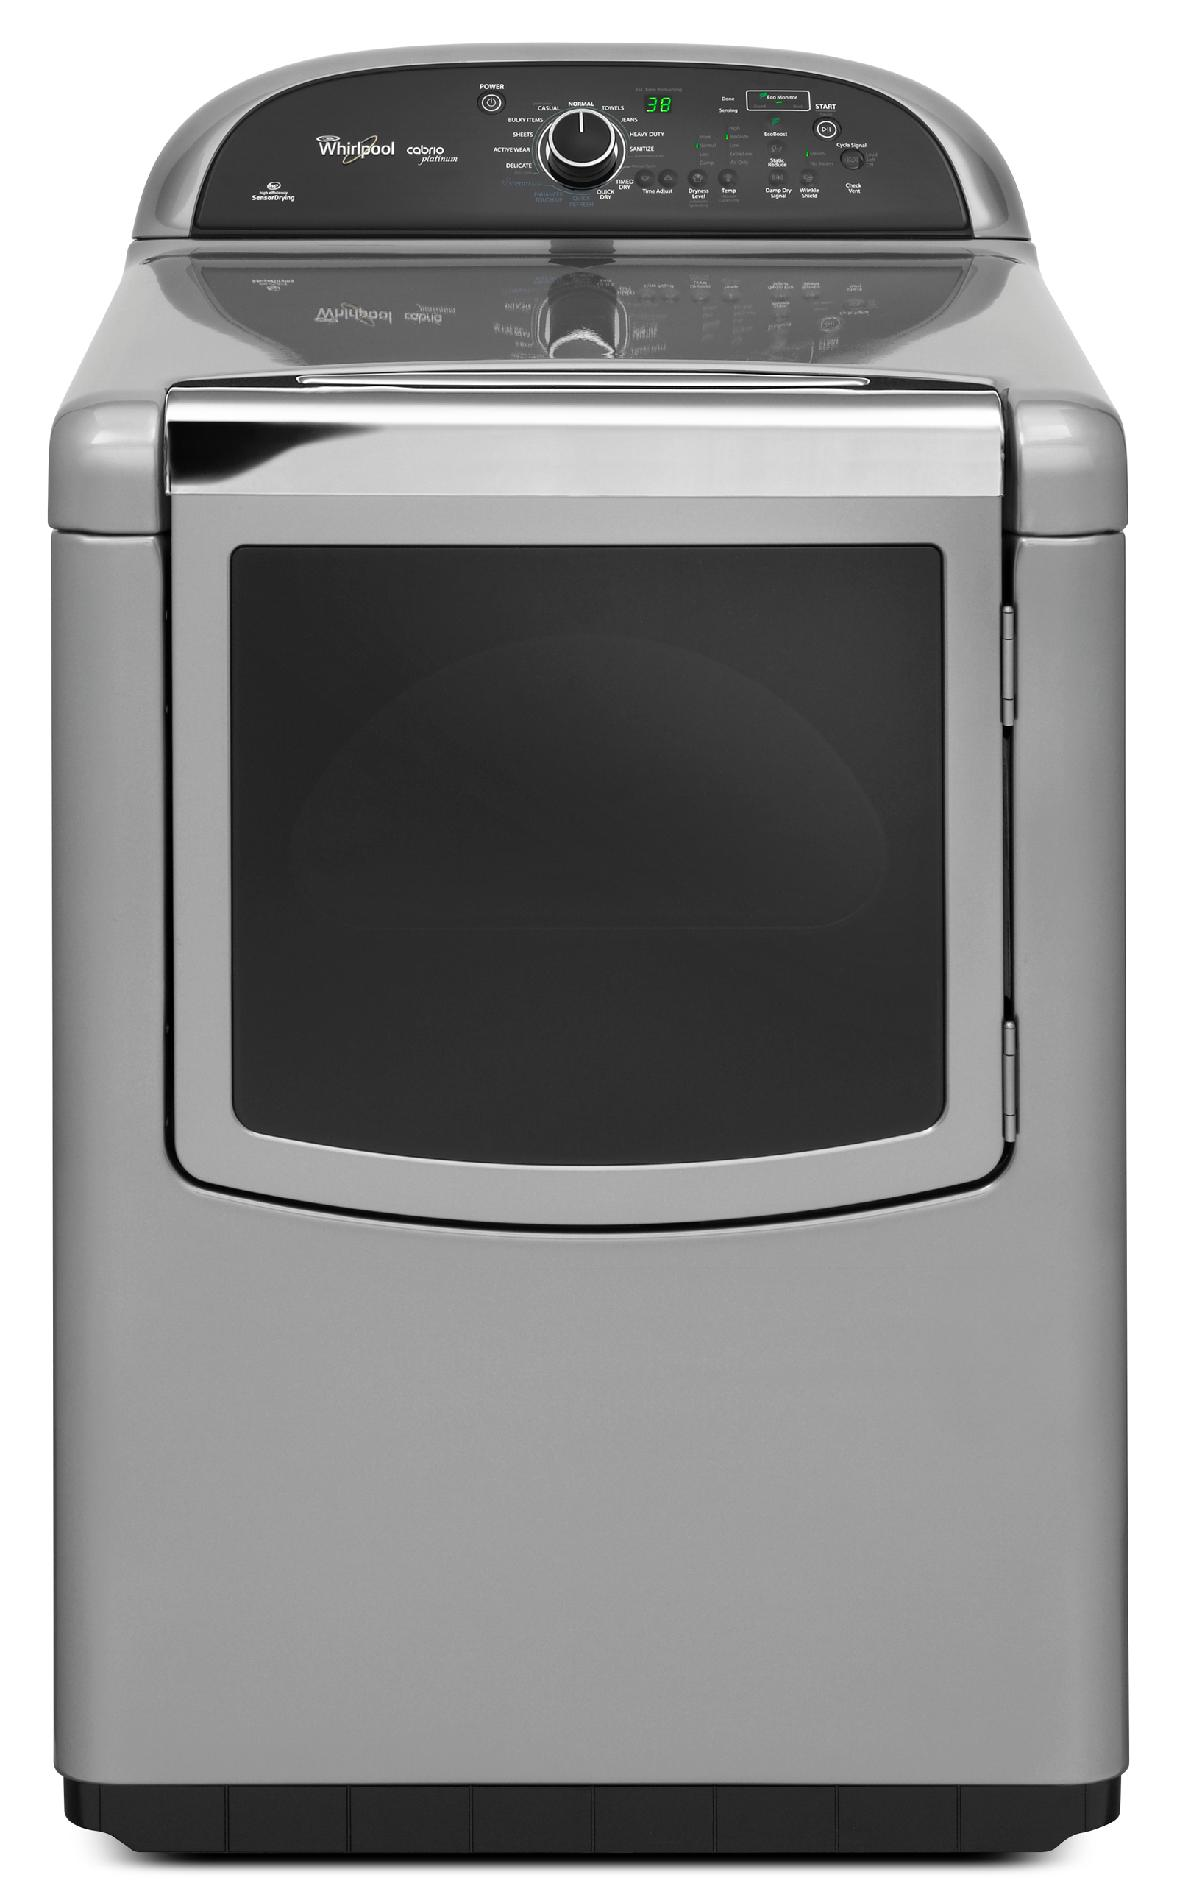 Whirlpool Wed8900bc 7 6 Cu Ft Cabrio Platinum - Whirlpool Steam Dryer